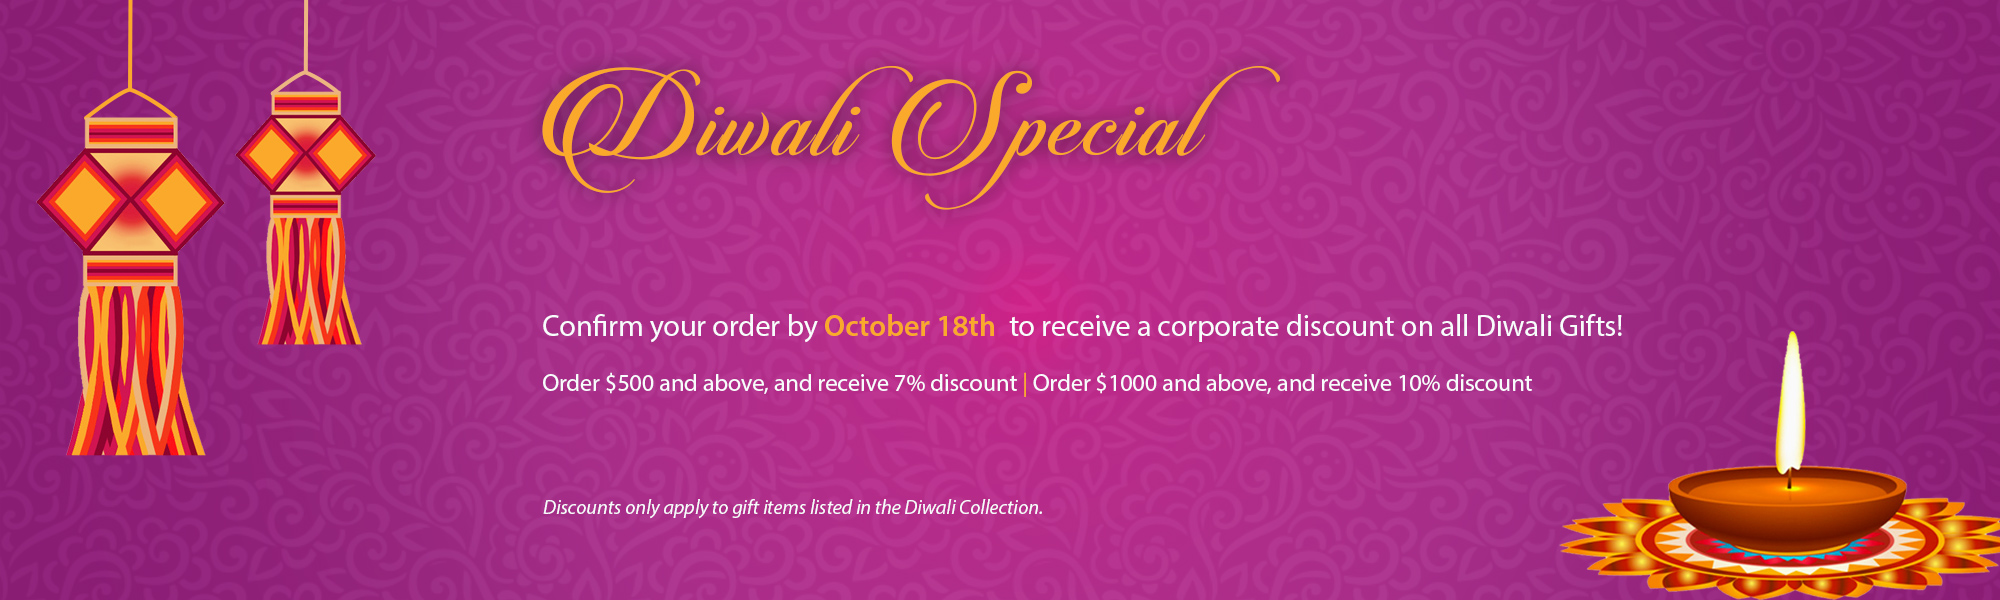 Diwali Special for Corporate